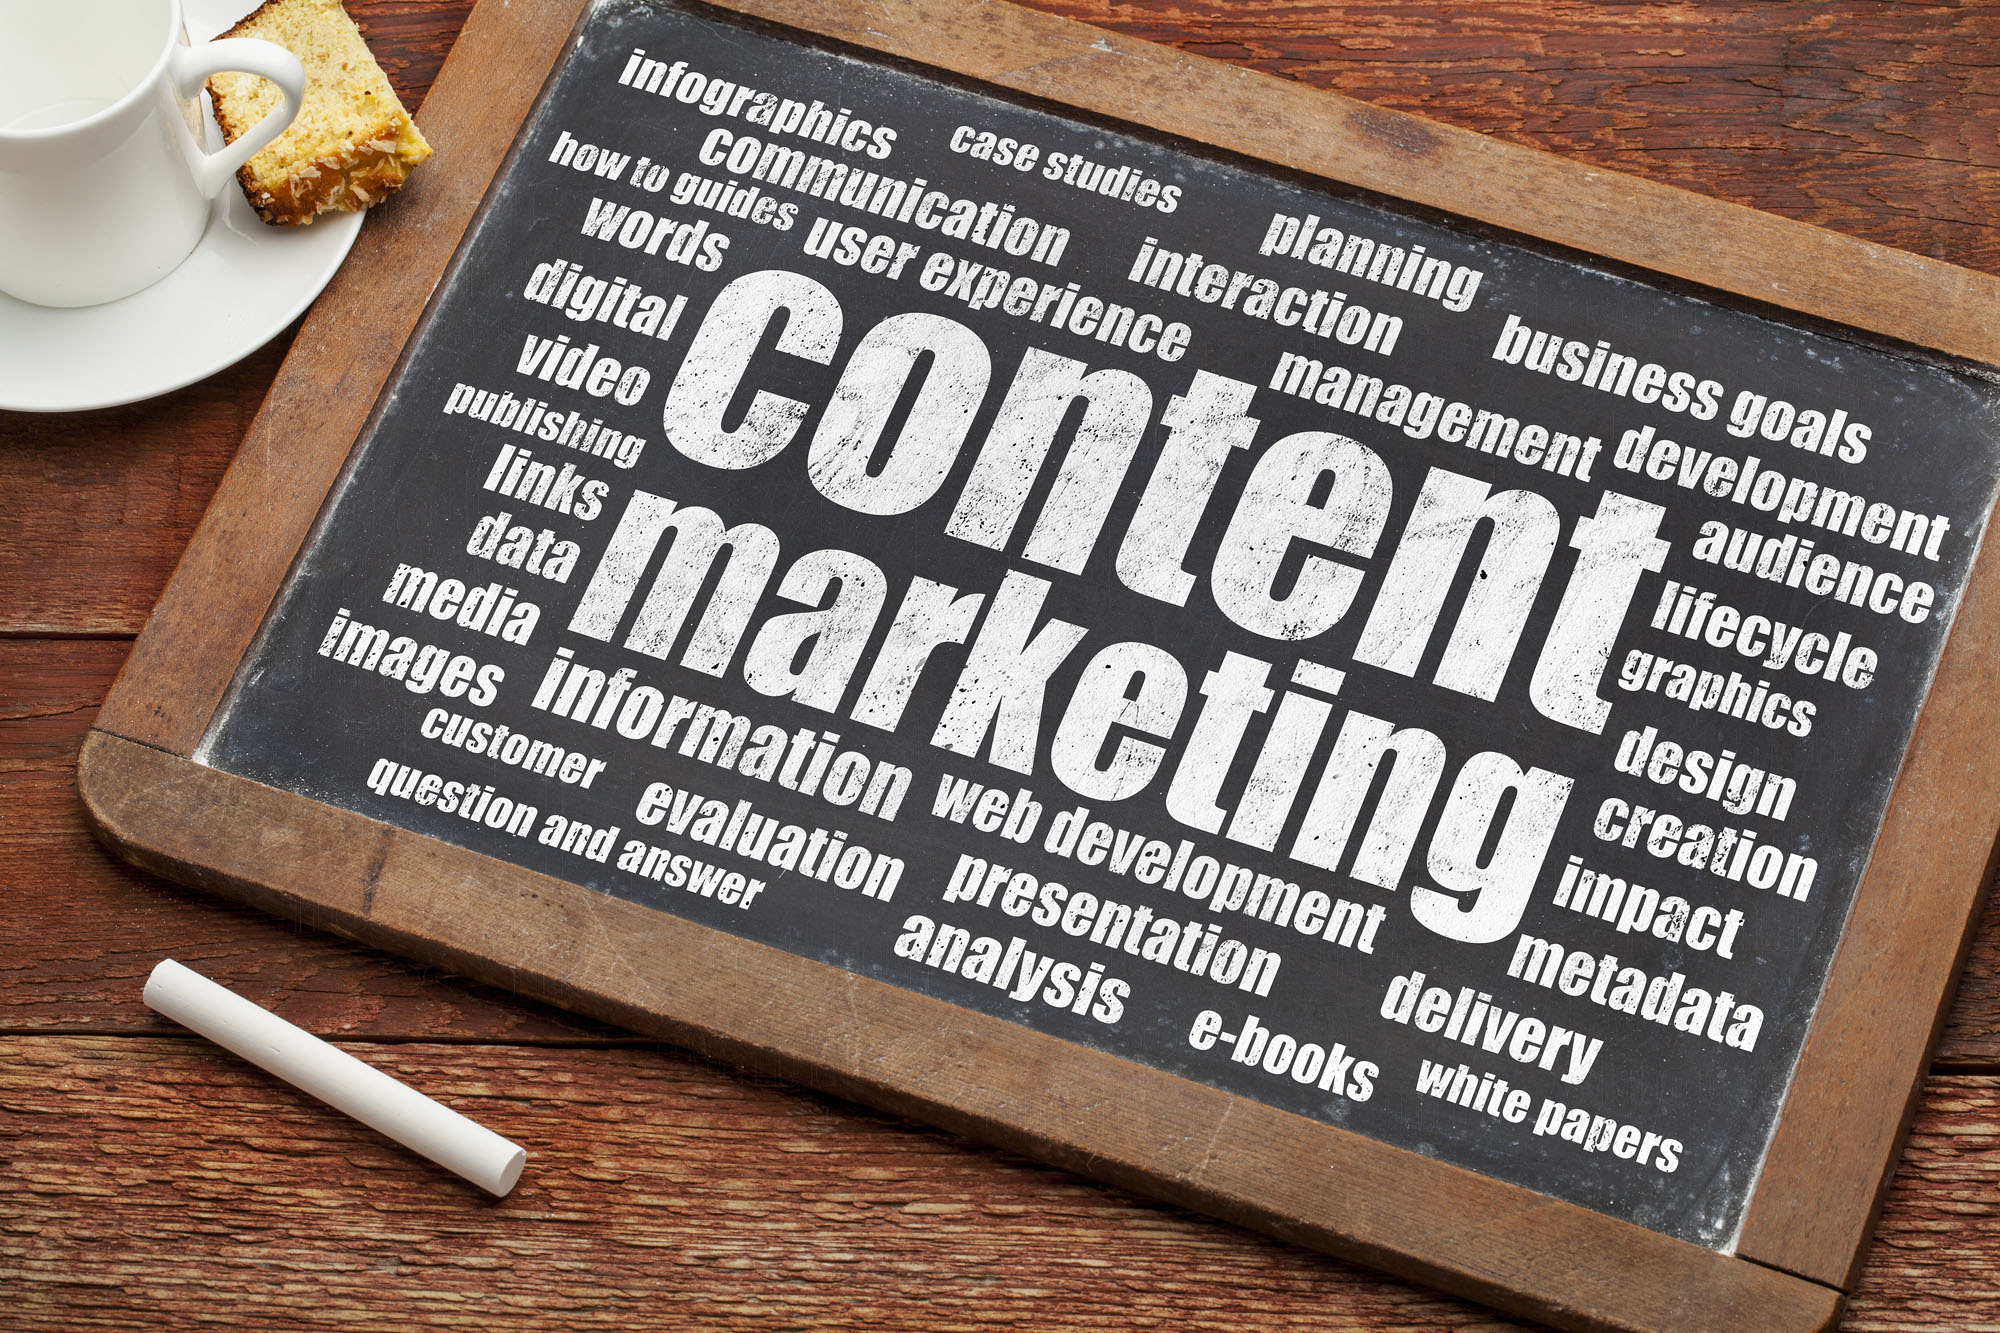 4 Benefits of Content Marketing